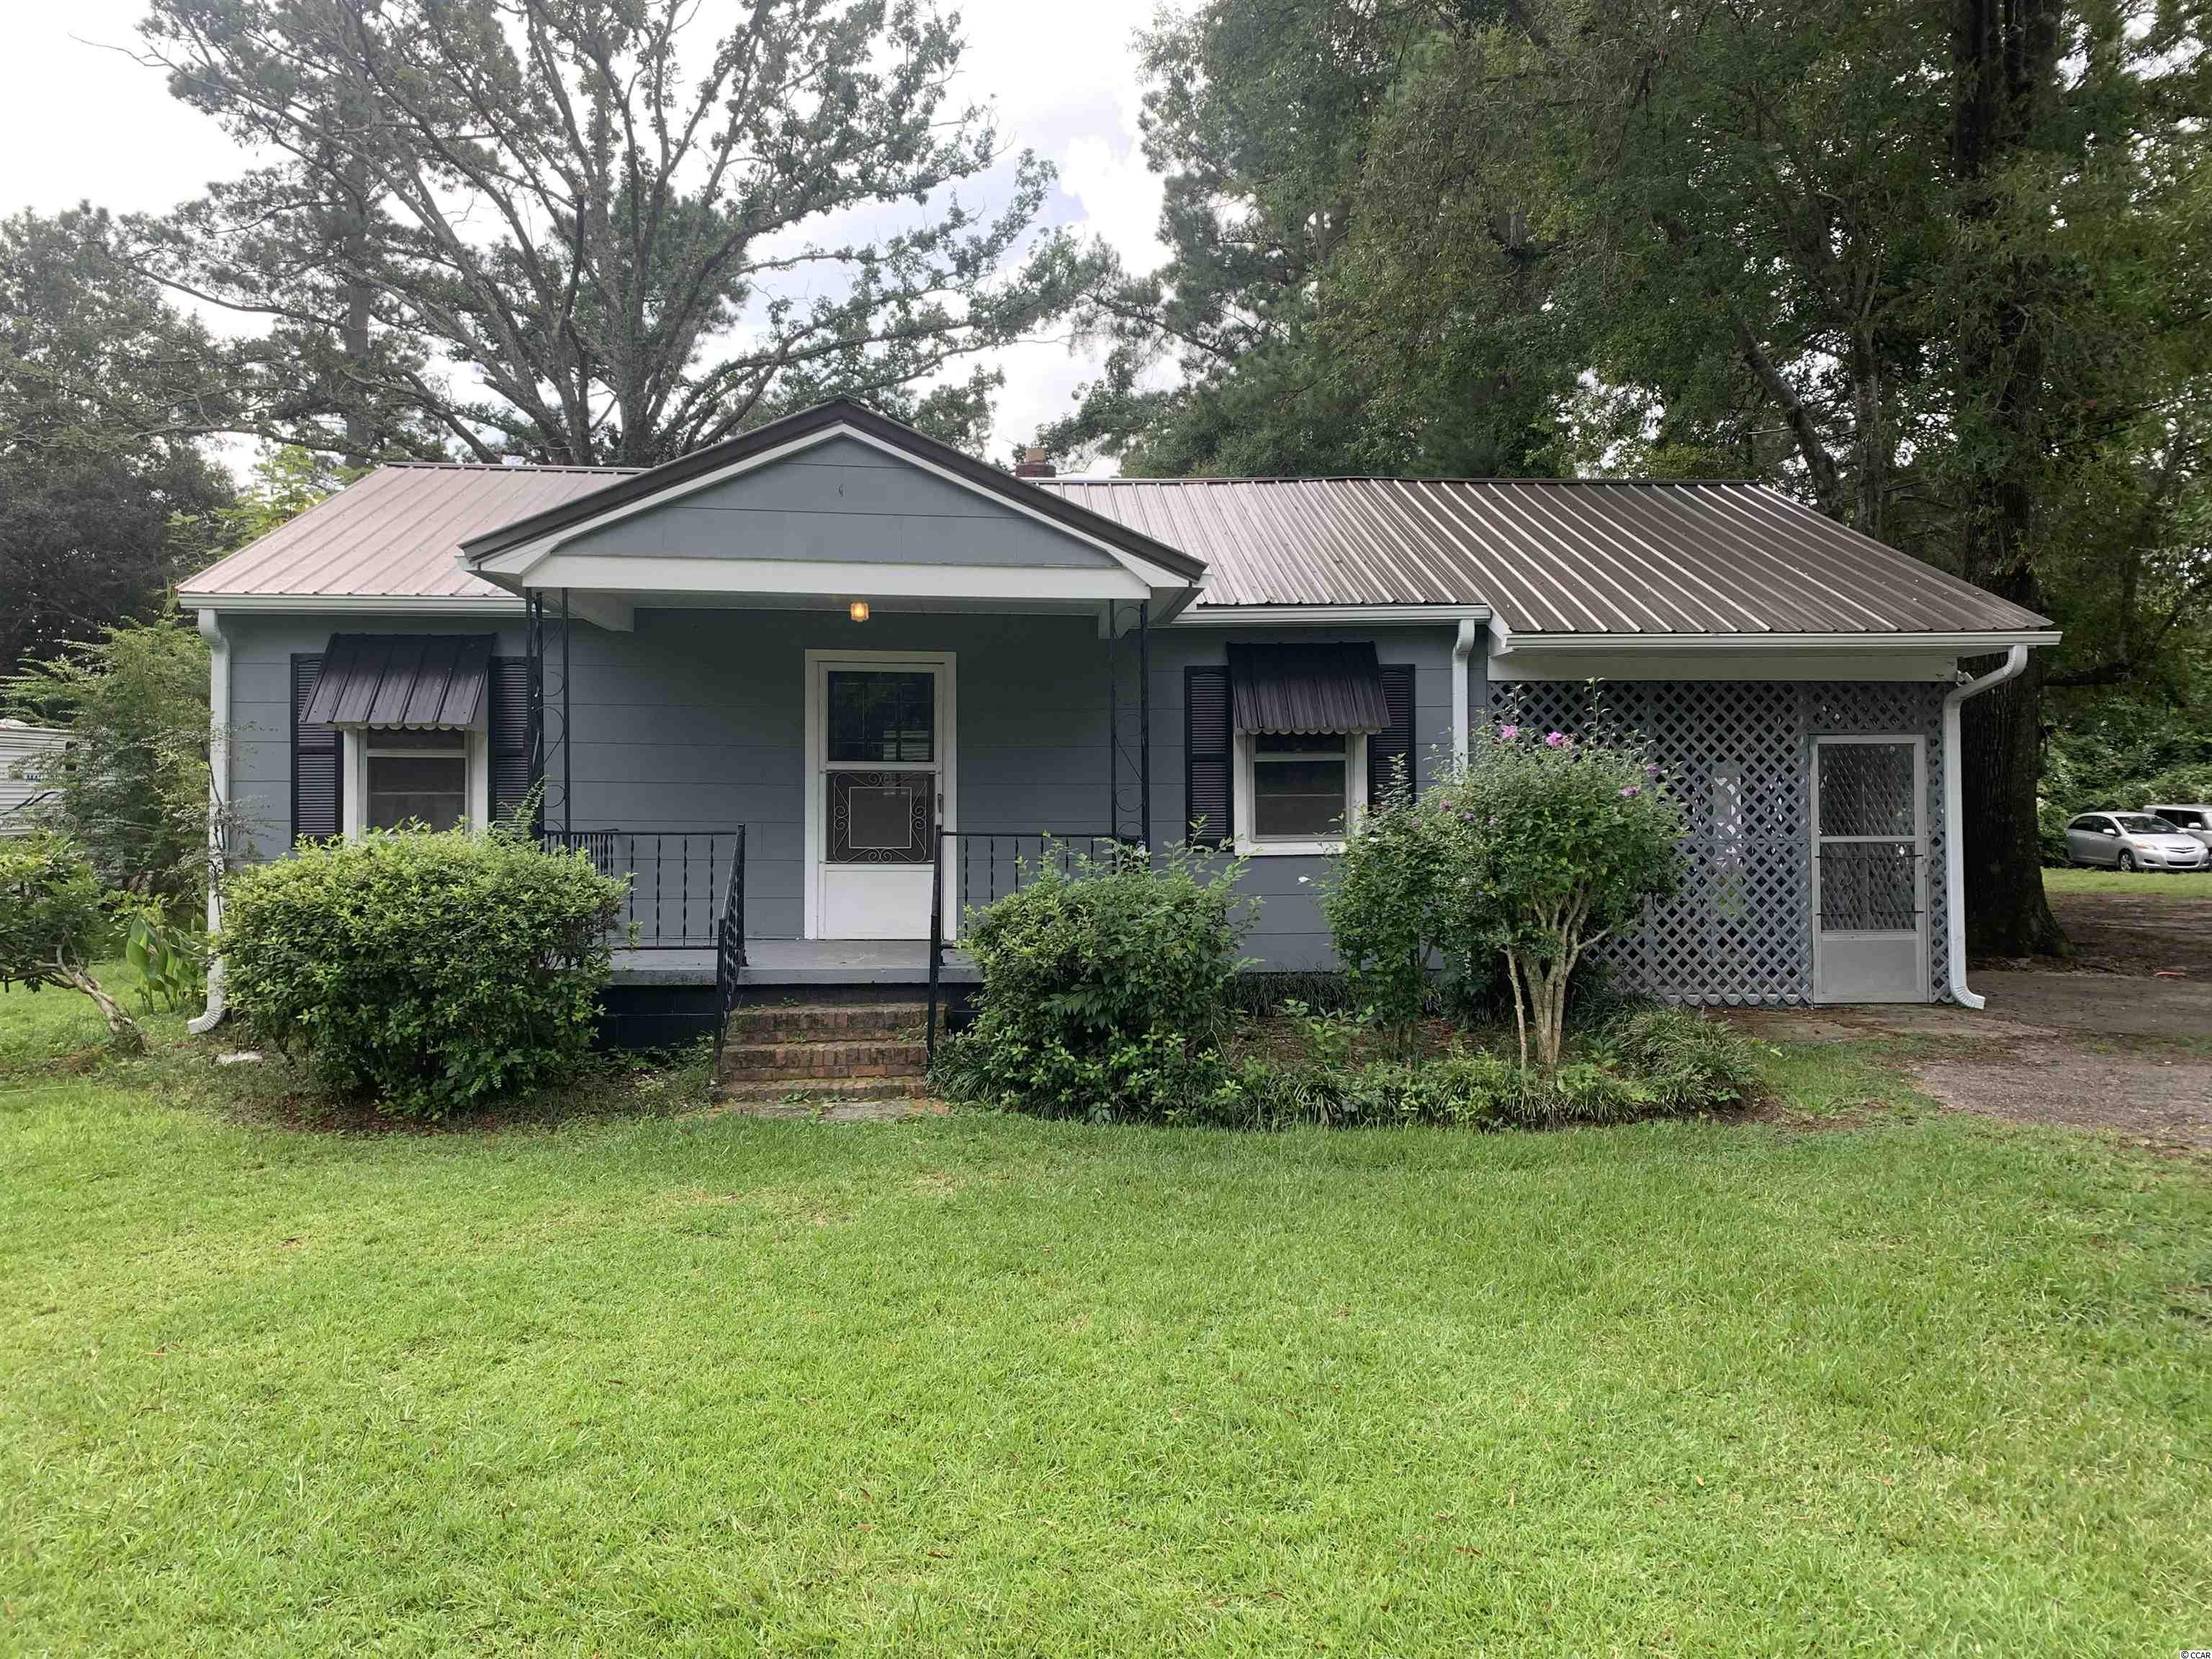 """Home is being sold """"AS IS""""  This home is move-in ready, resent repairs include: Newly stained floors, foundation repair, plumbing repaired, new/repaired duct work in crawl space, new paint on outside of home as well as new soffit, facial and gutter! Great Opportunity to own a home in the City of Conway!"""